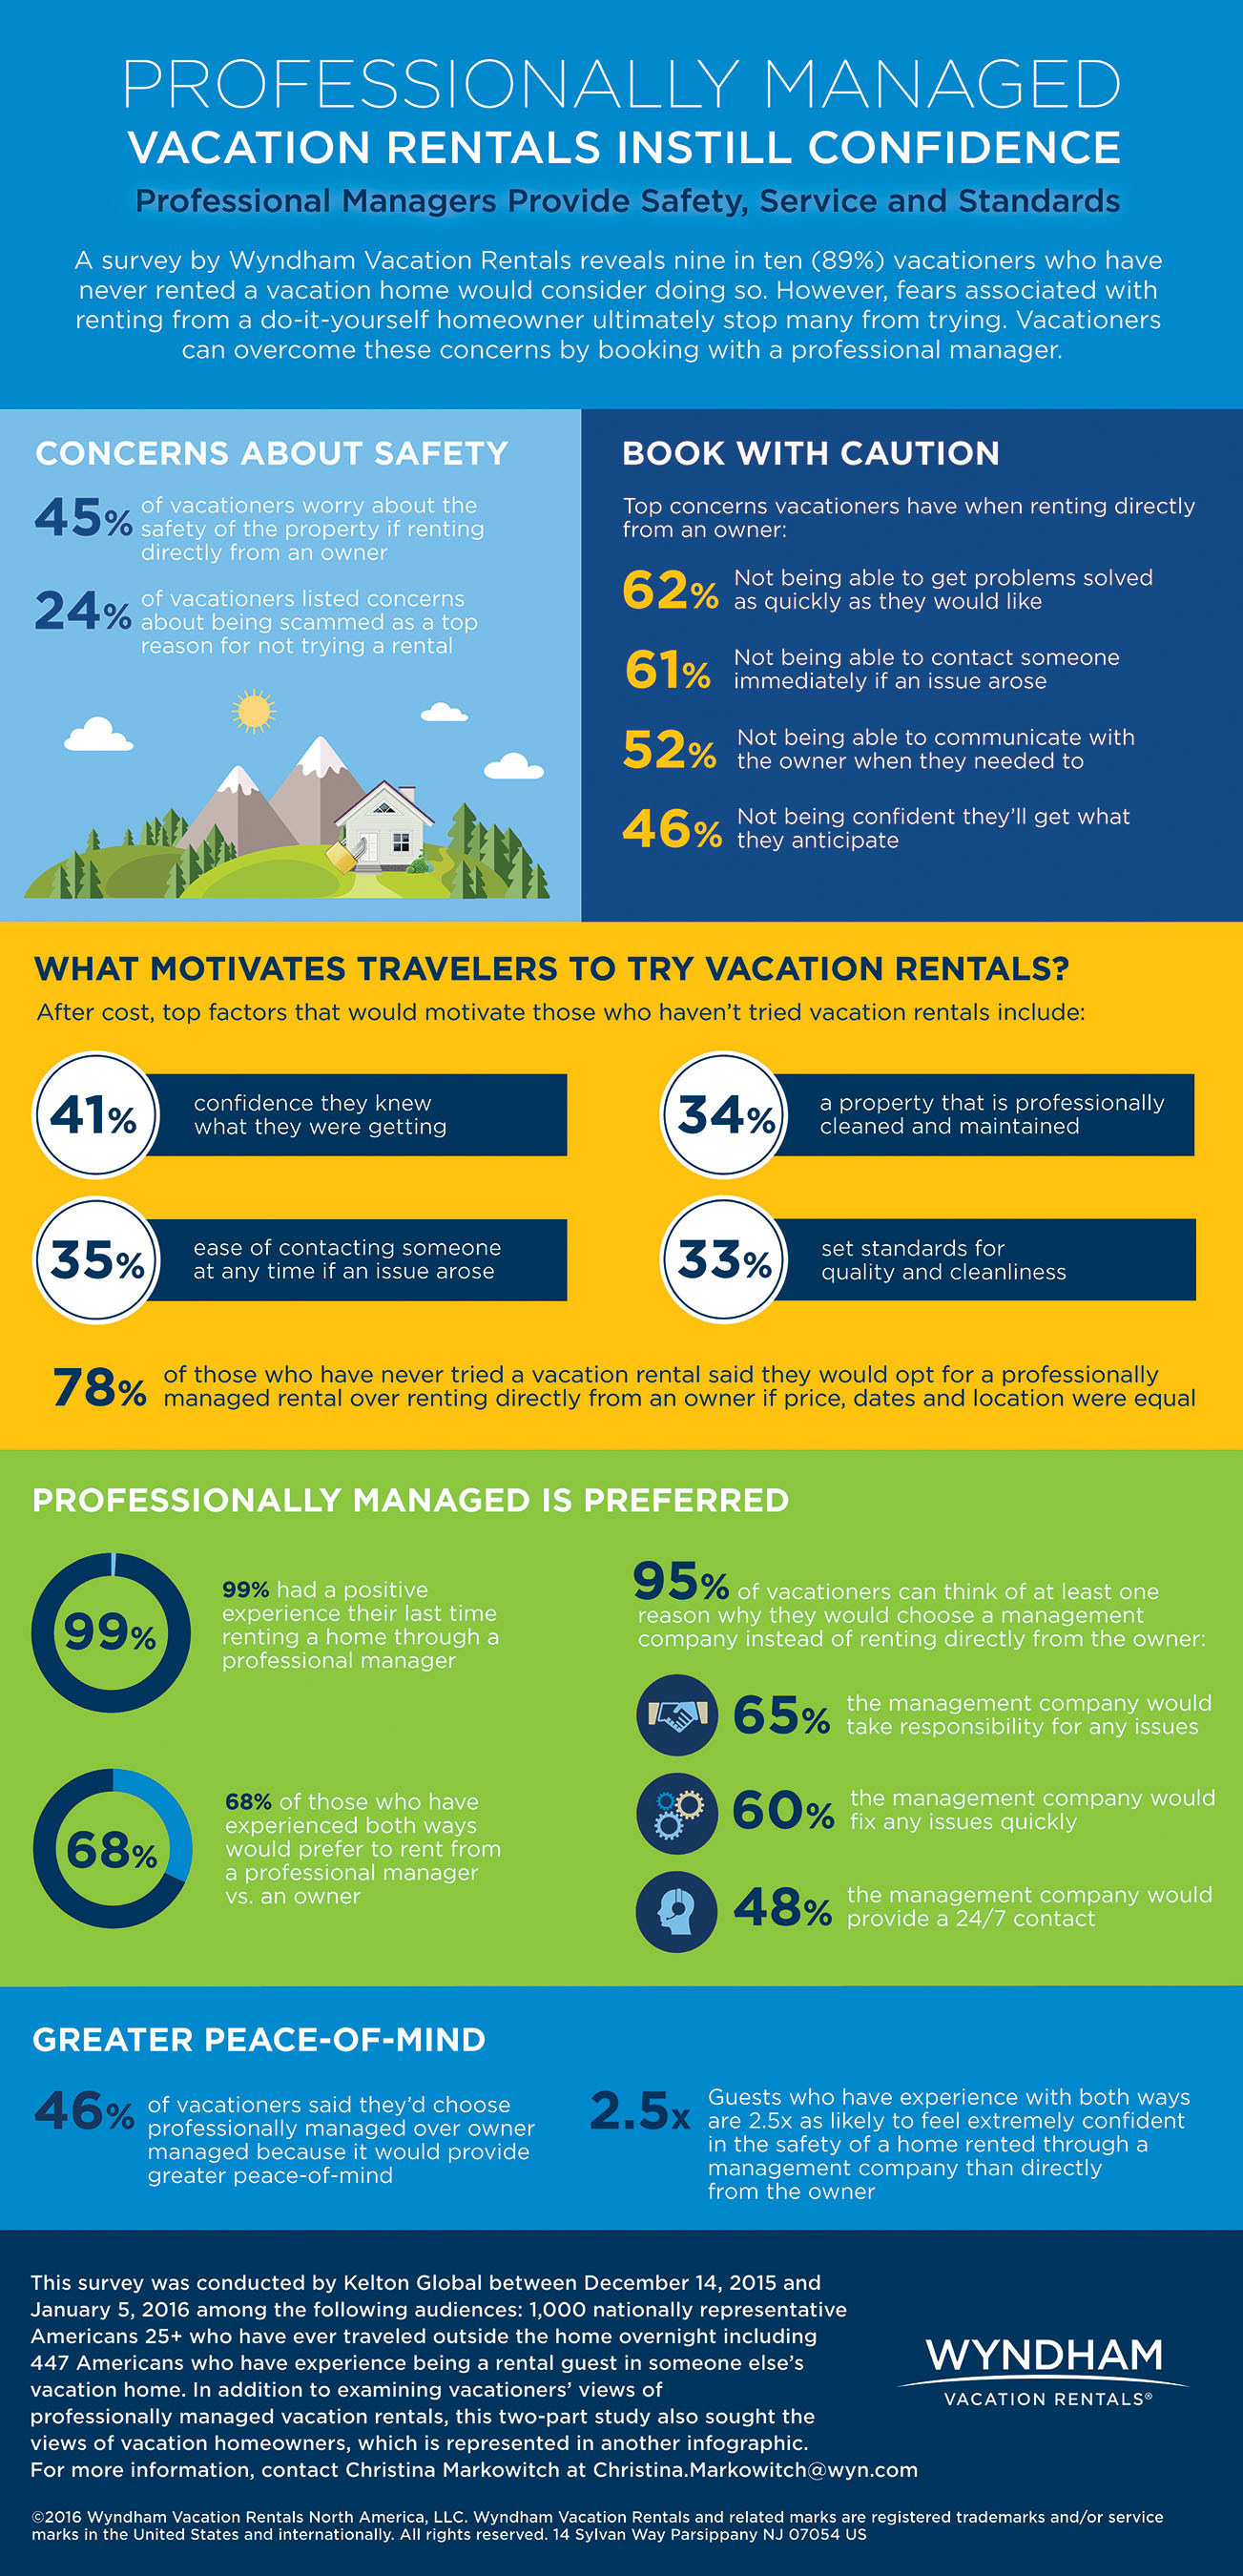 A survey by Wyndham Vacation Rentals reveals nine in ten (89%) vacationers who have never rented a vacation home would consider doing so. But fears associated with renting from a do-it-yourself homeowner stop many from trying.